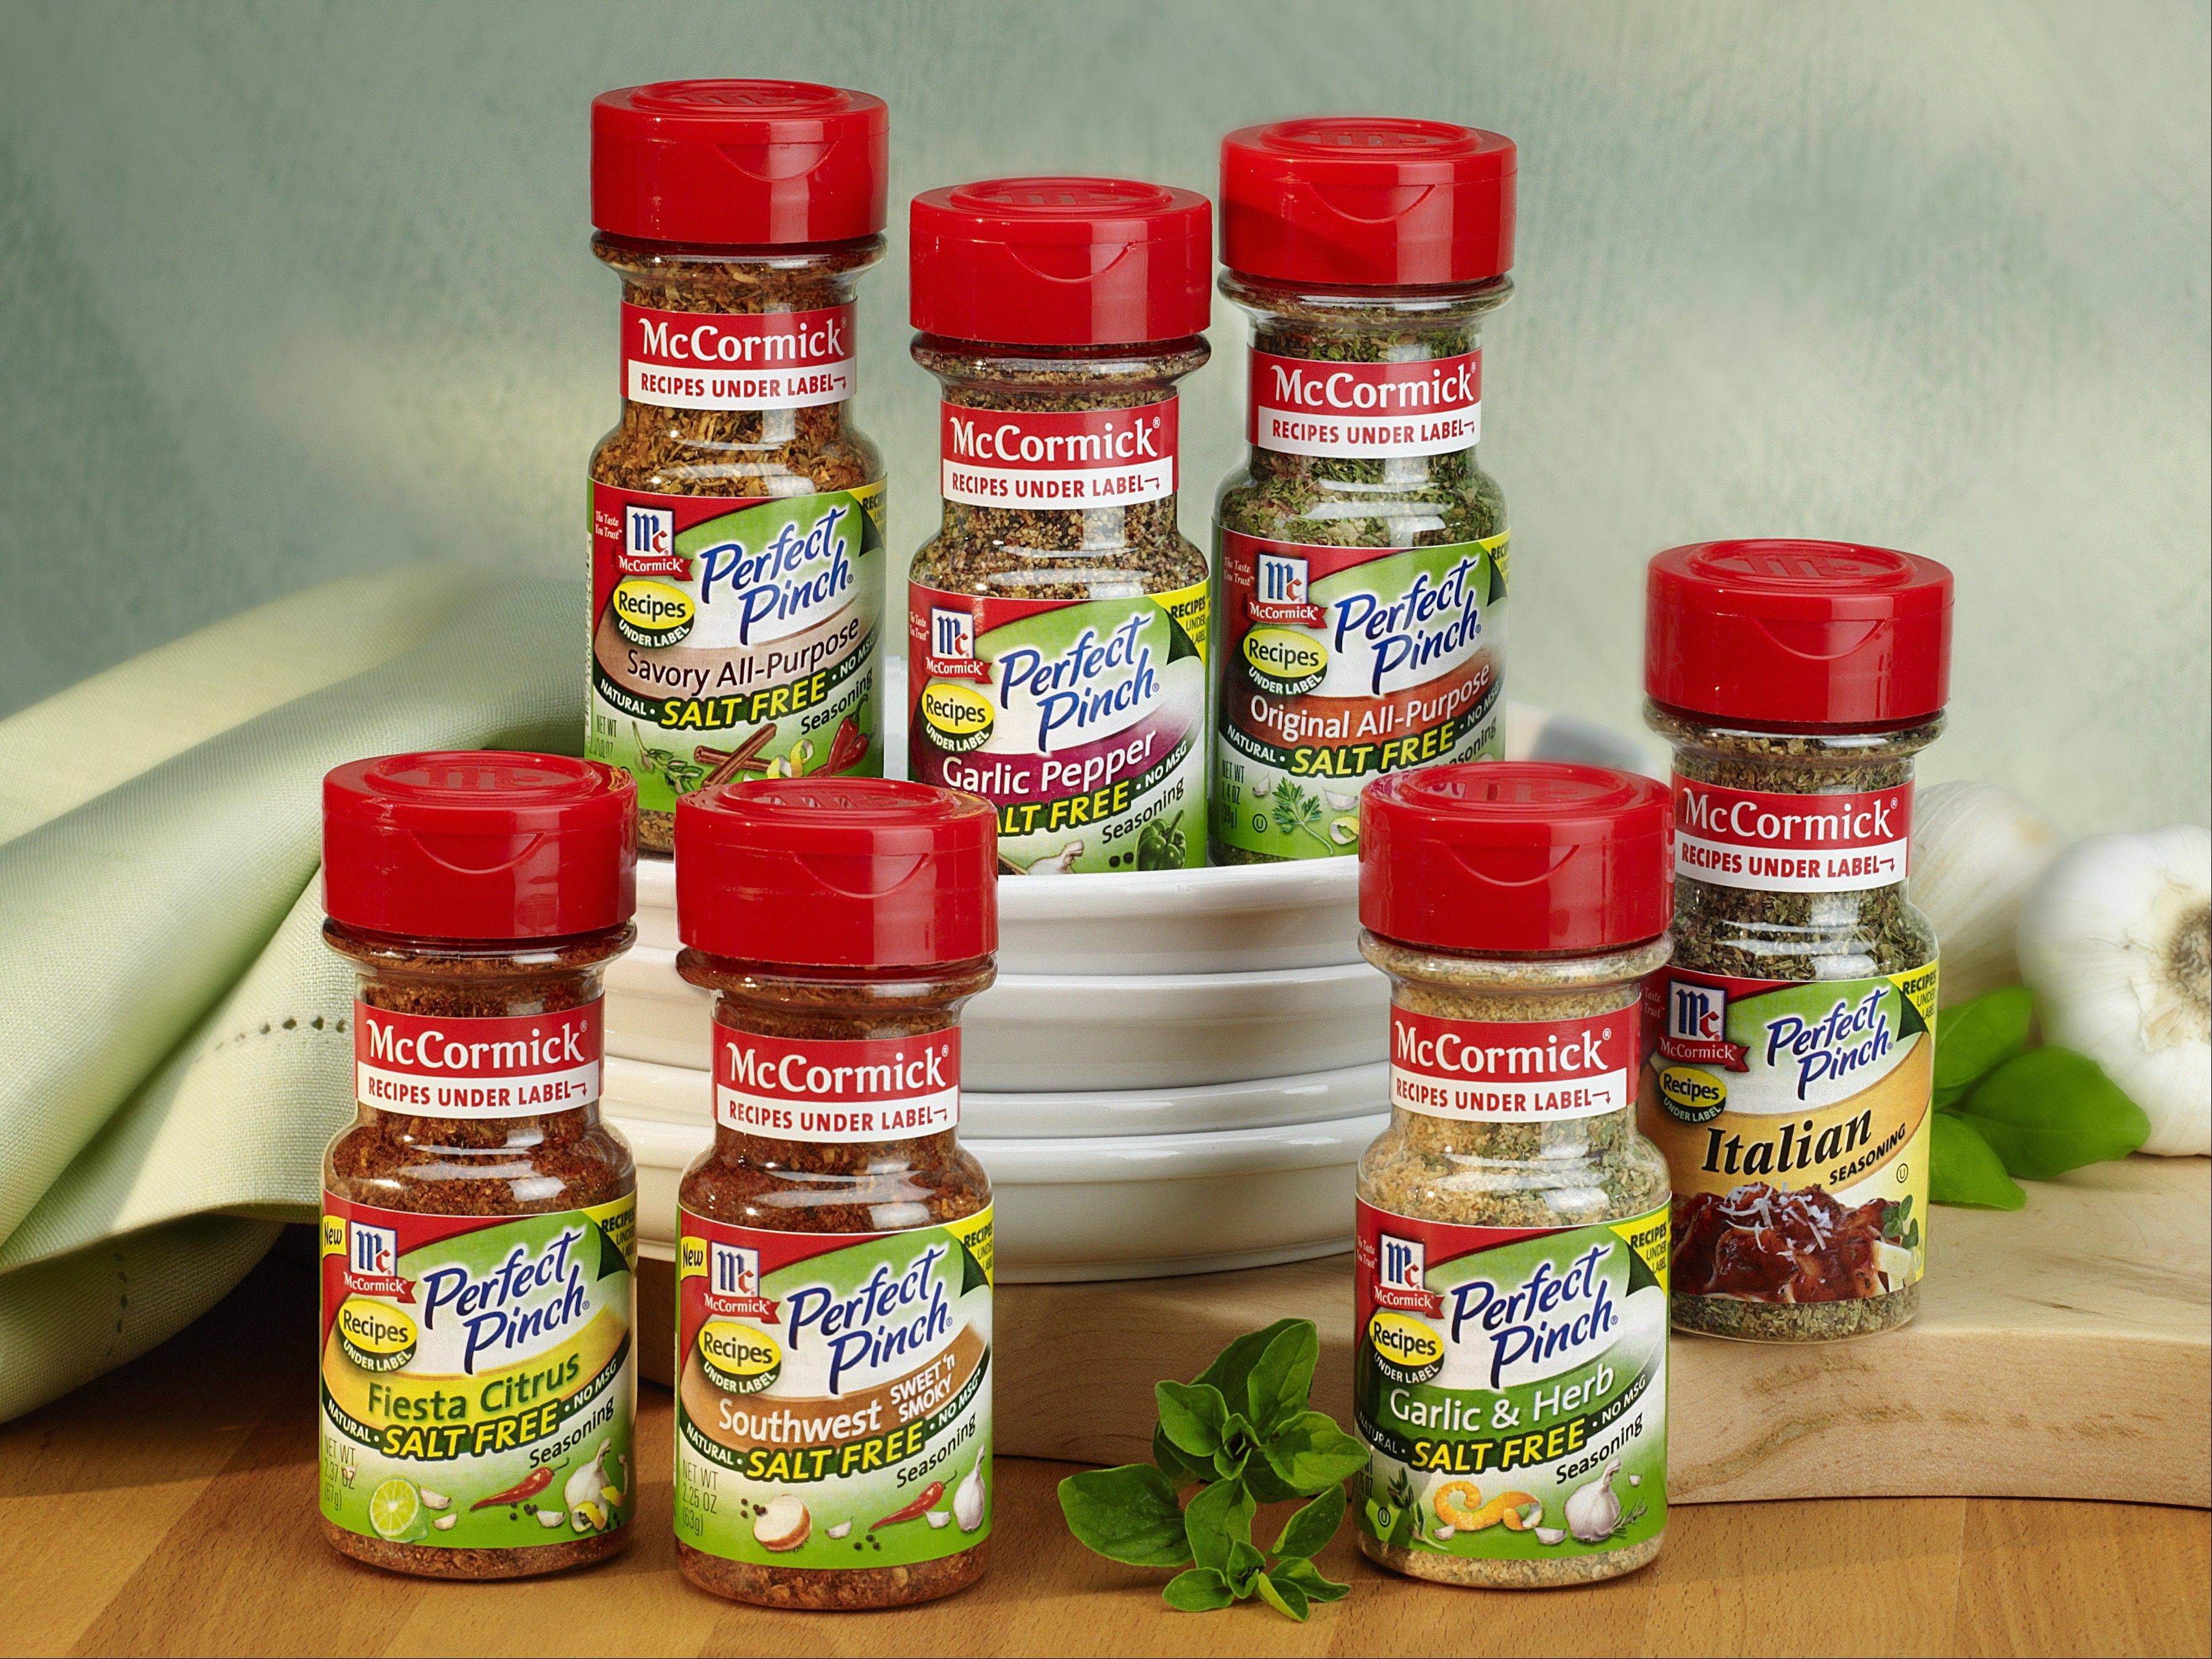 McCormick Perfect Pinch is a line of salt-free spice blends.